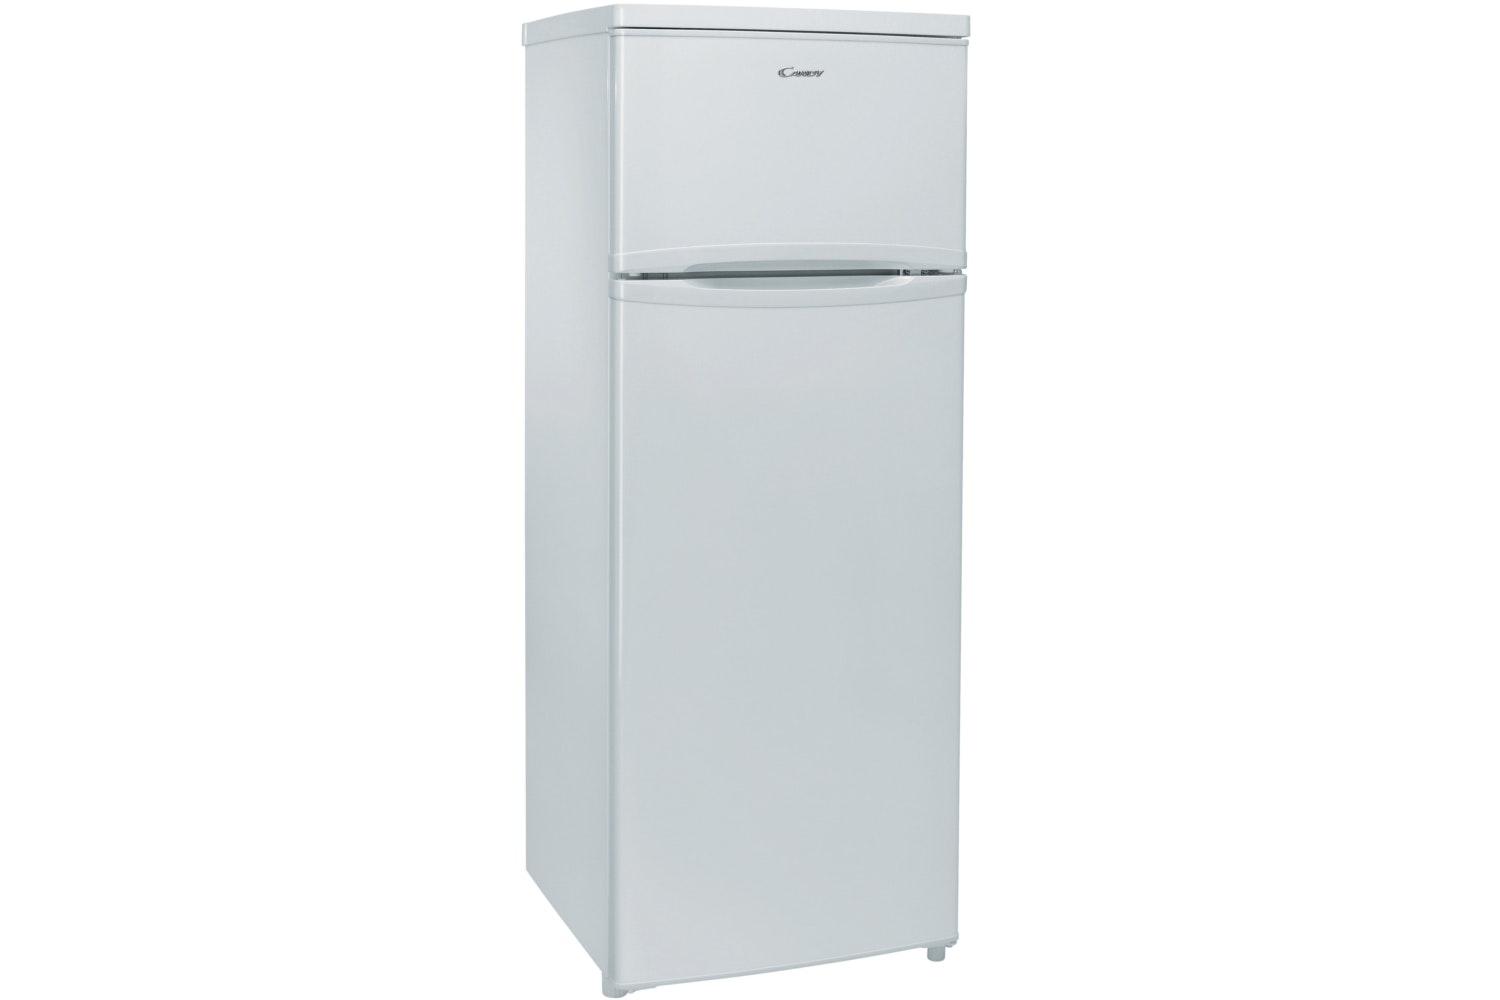 Candy Freestanding Fridge Freezer | CTSE5142W